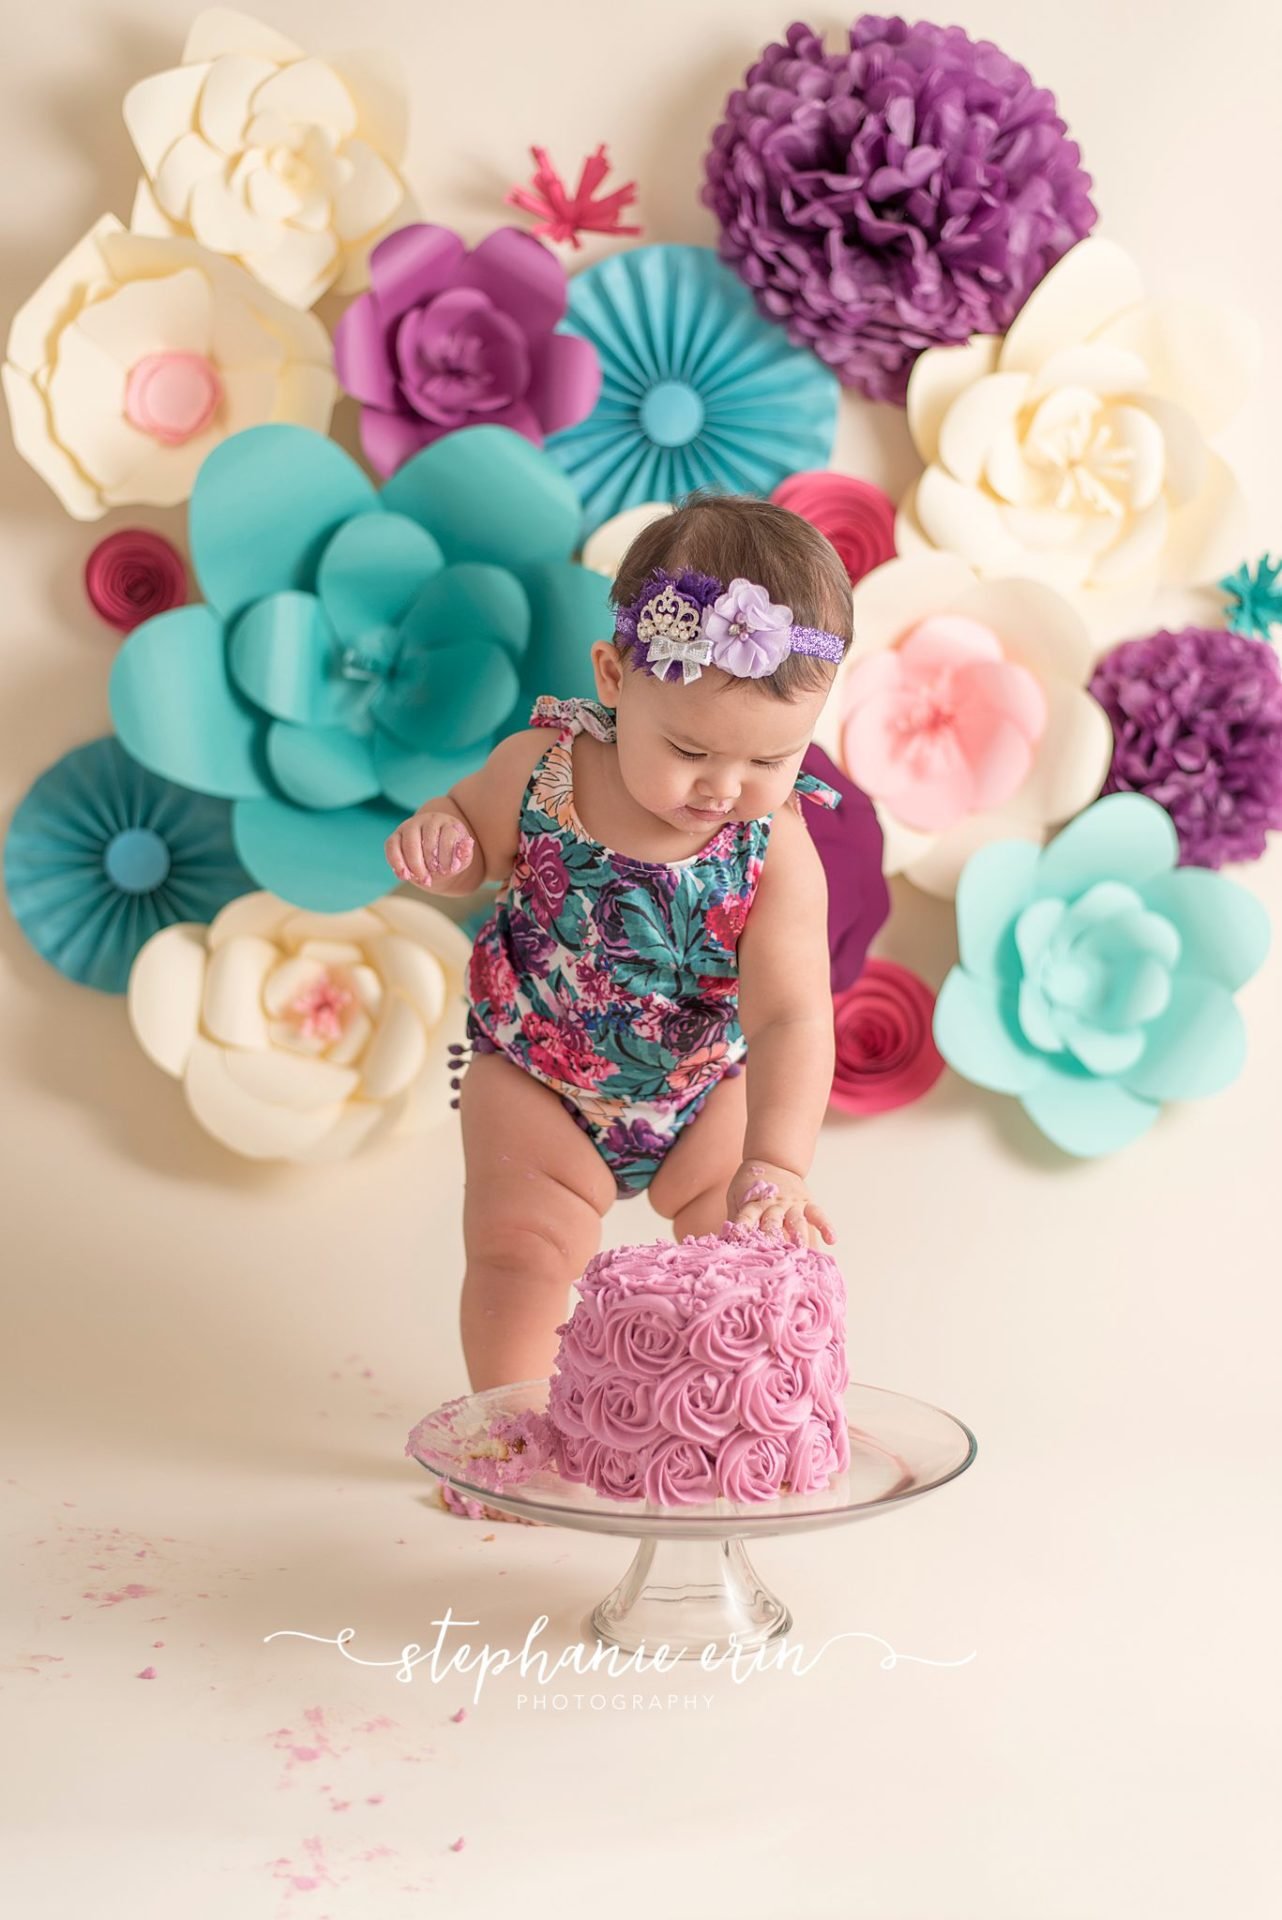 RILEY'S CAKE SMASH SESSION  |  STEPHANIE ERIN PHOTOGRAPHY  |  SOUTHERN UTAH PHOTOGRAPHER